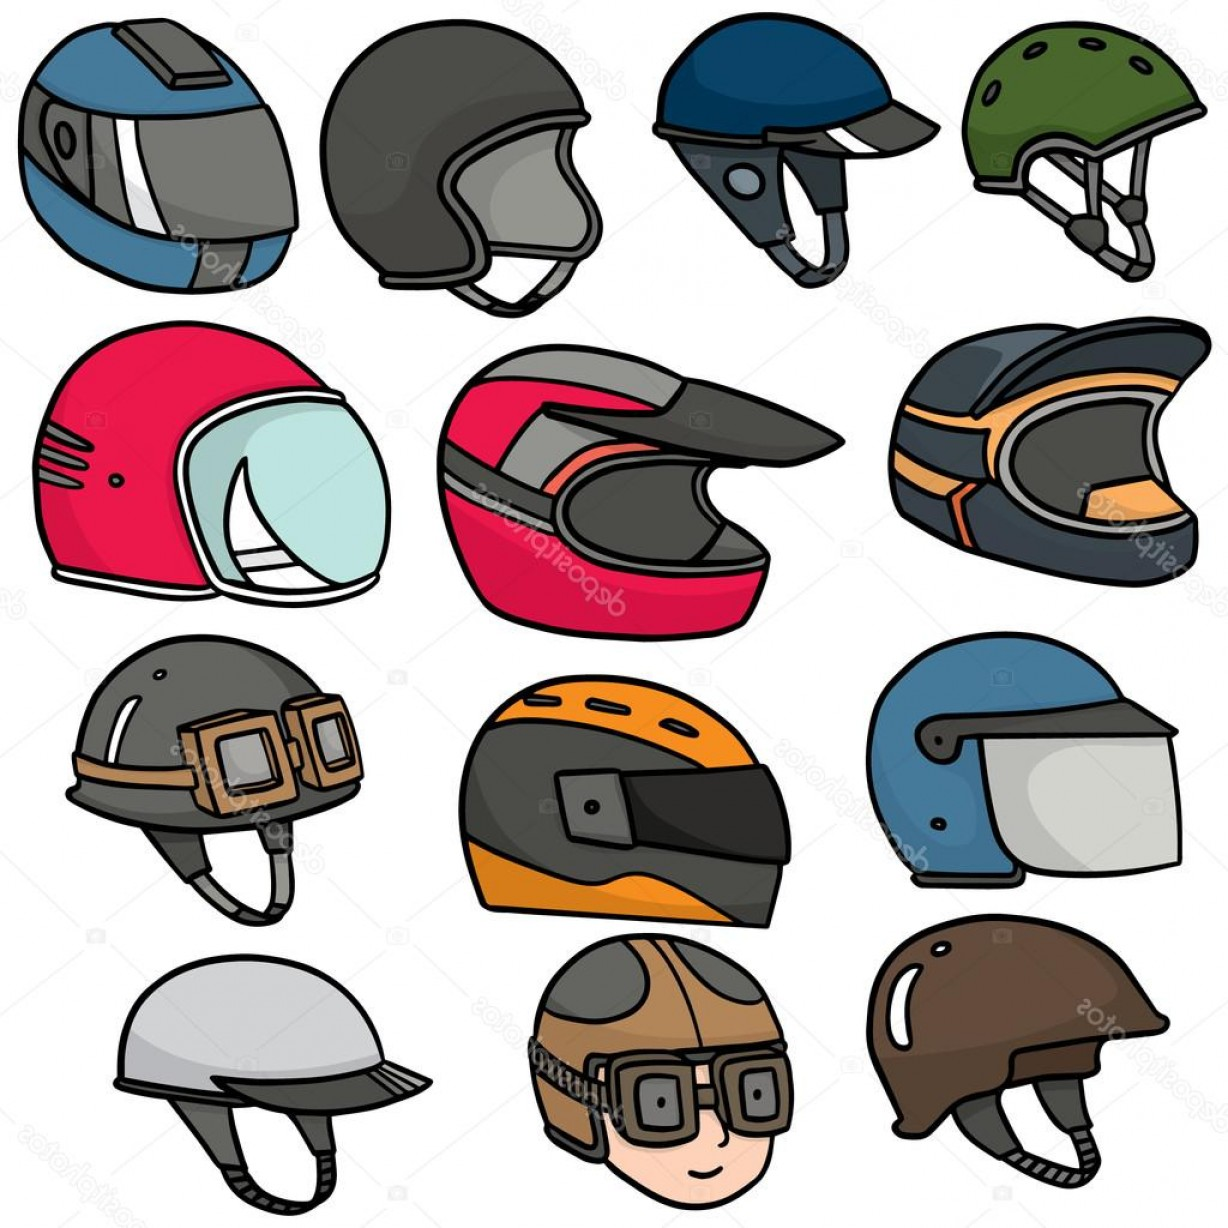 Motorcycle Helmet Vector Art: Stock Illustration Vector Set Of Motorcycle Helmet